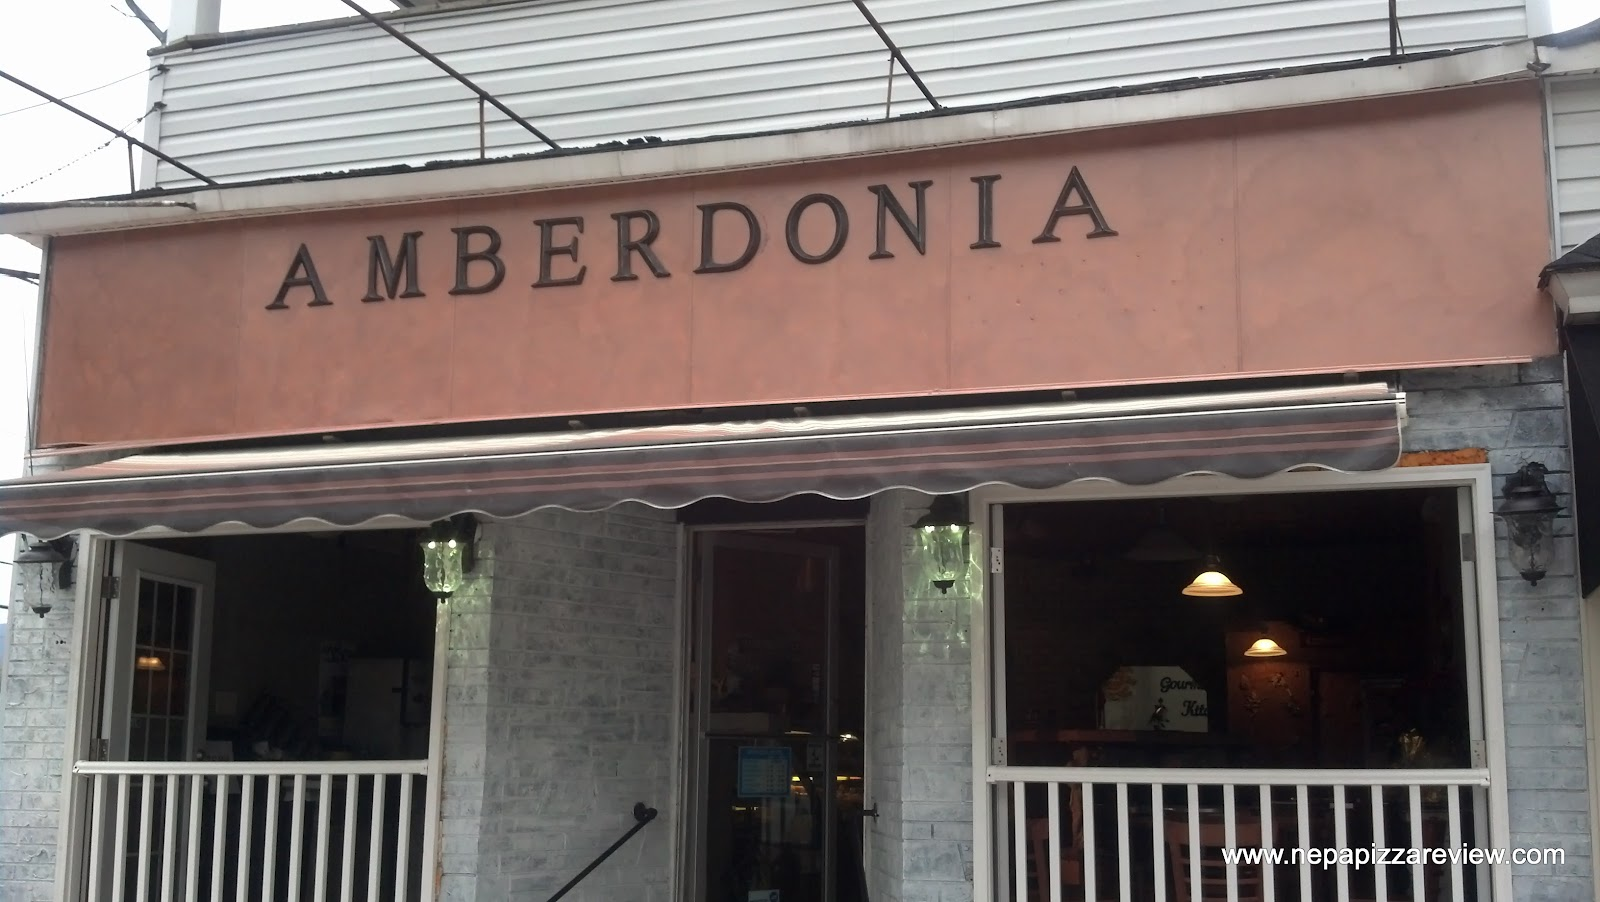 Amberdonia bakery is a place that i hadn t heard of until 3 to 4 months ago when i started to hear rumors that a bakery in scranton was building a wood